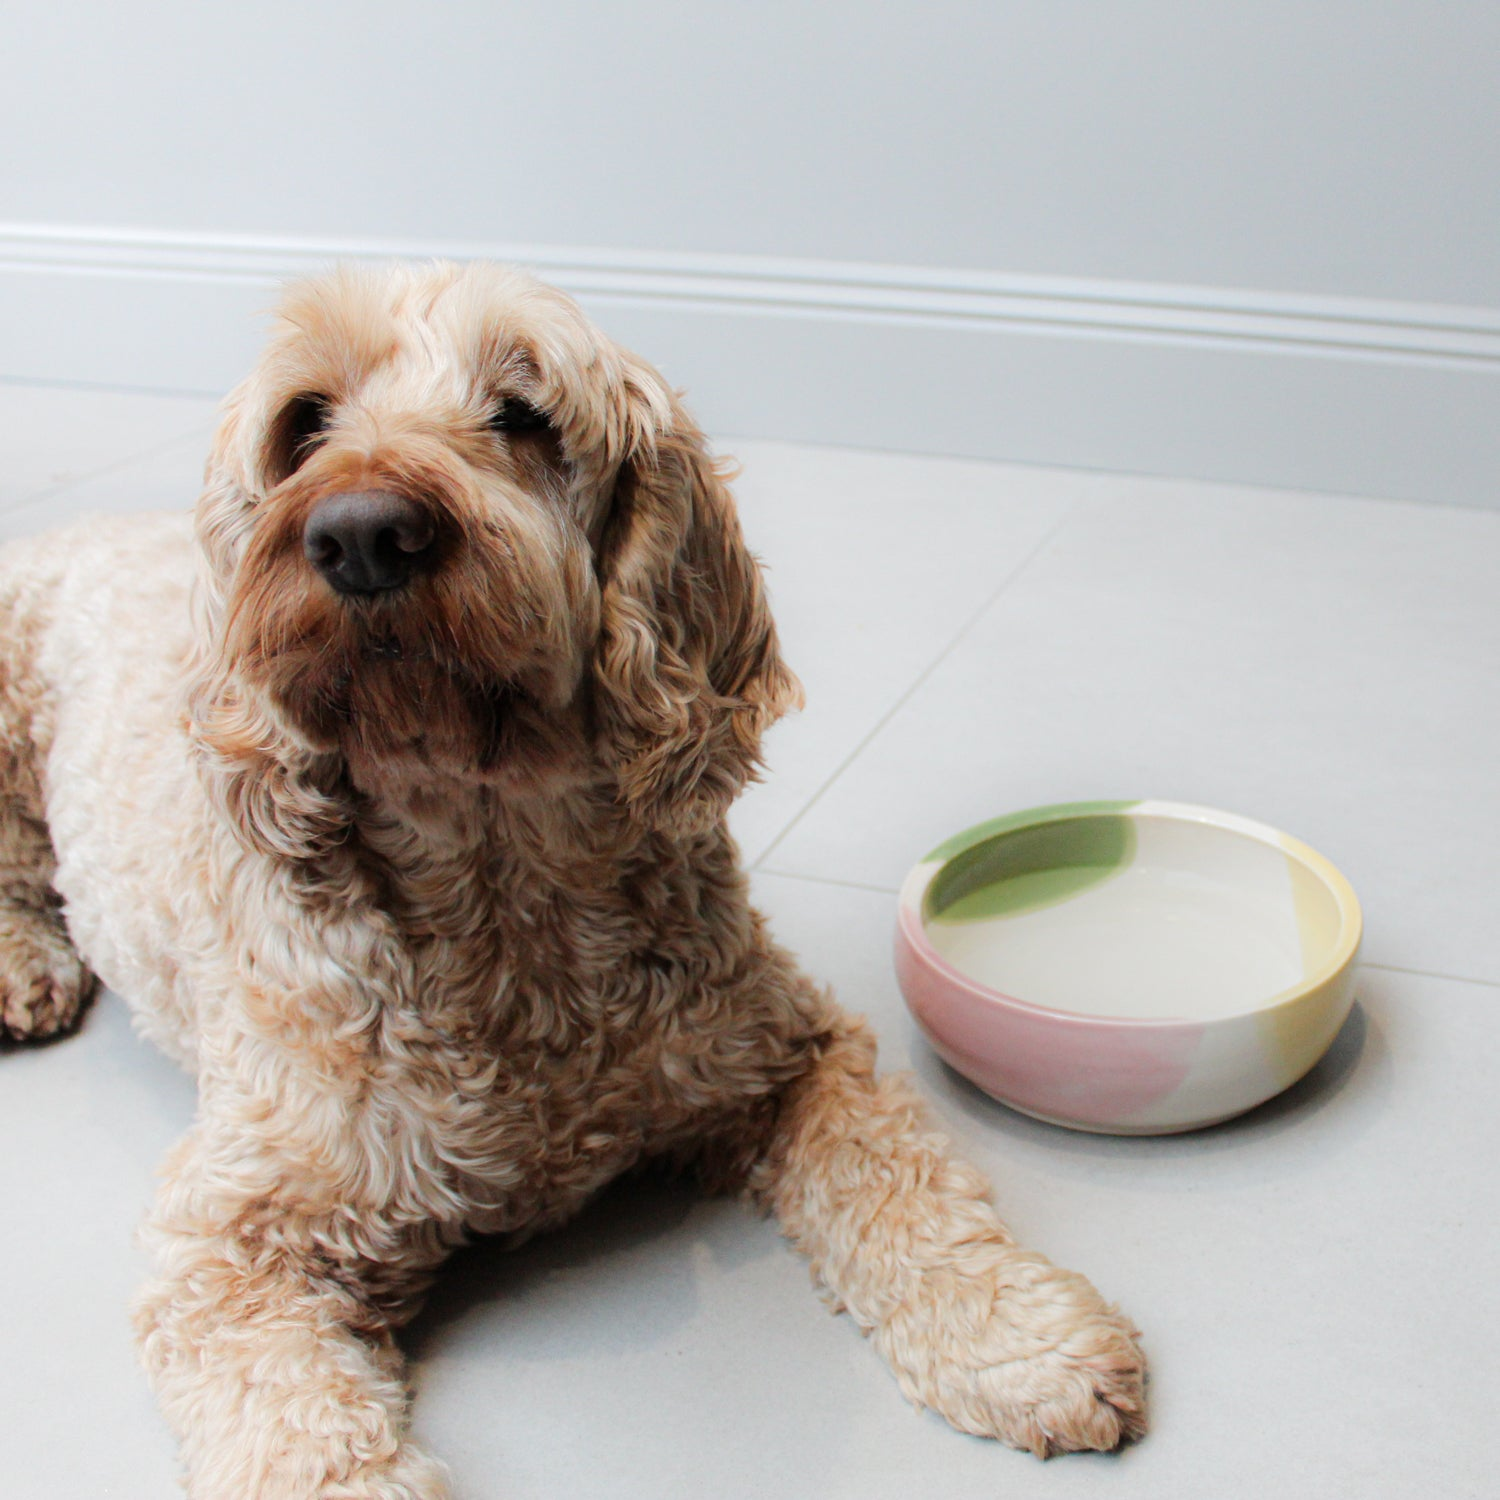 Milo the dog sitting next to a white, pink, green and yellow ceramic dog bowl.